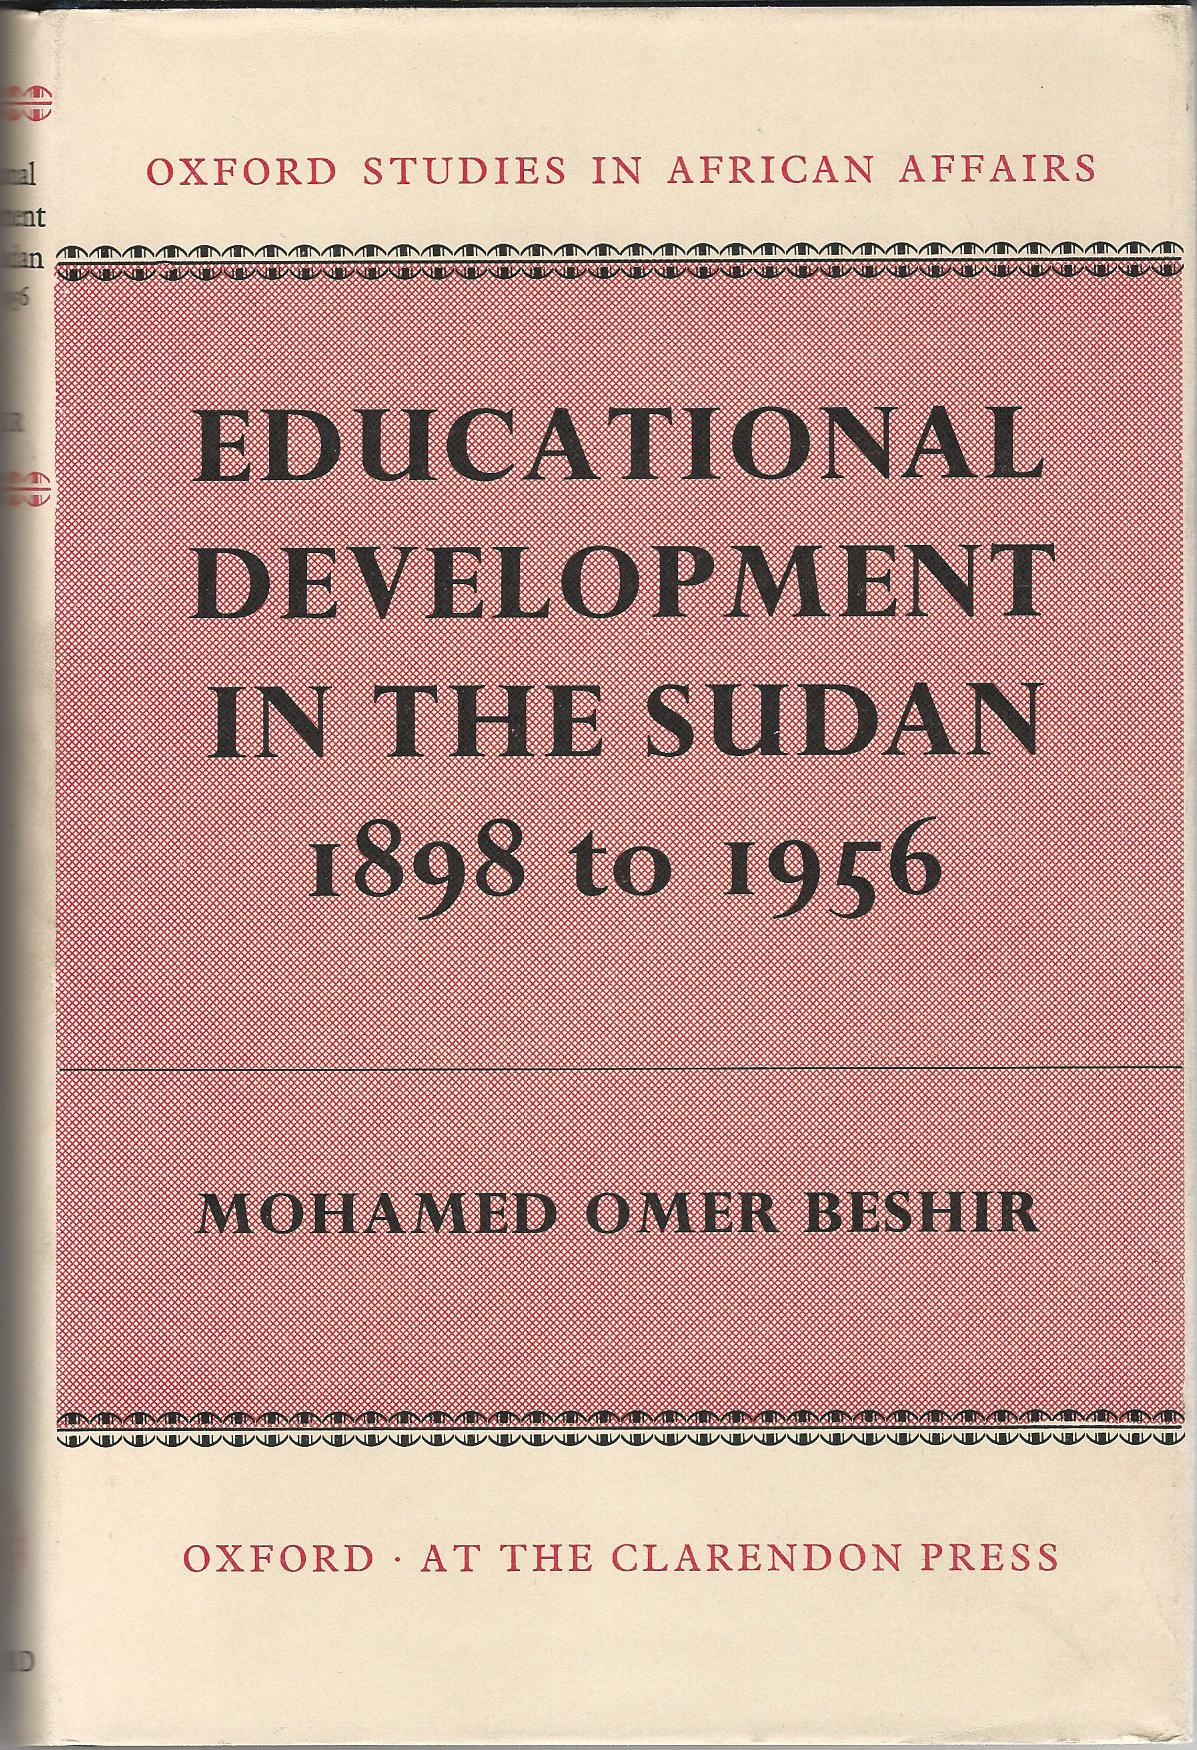 Image for Educational Development in the Sudan 1898-1956.